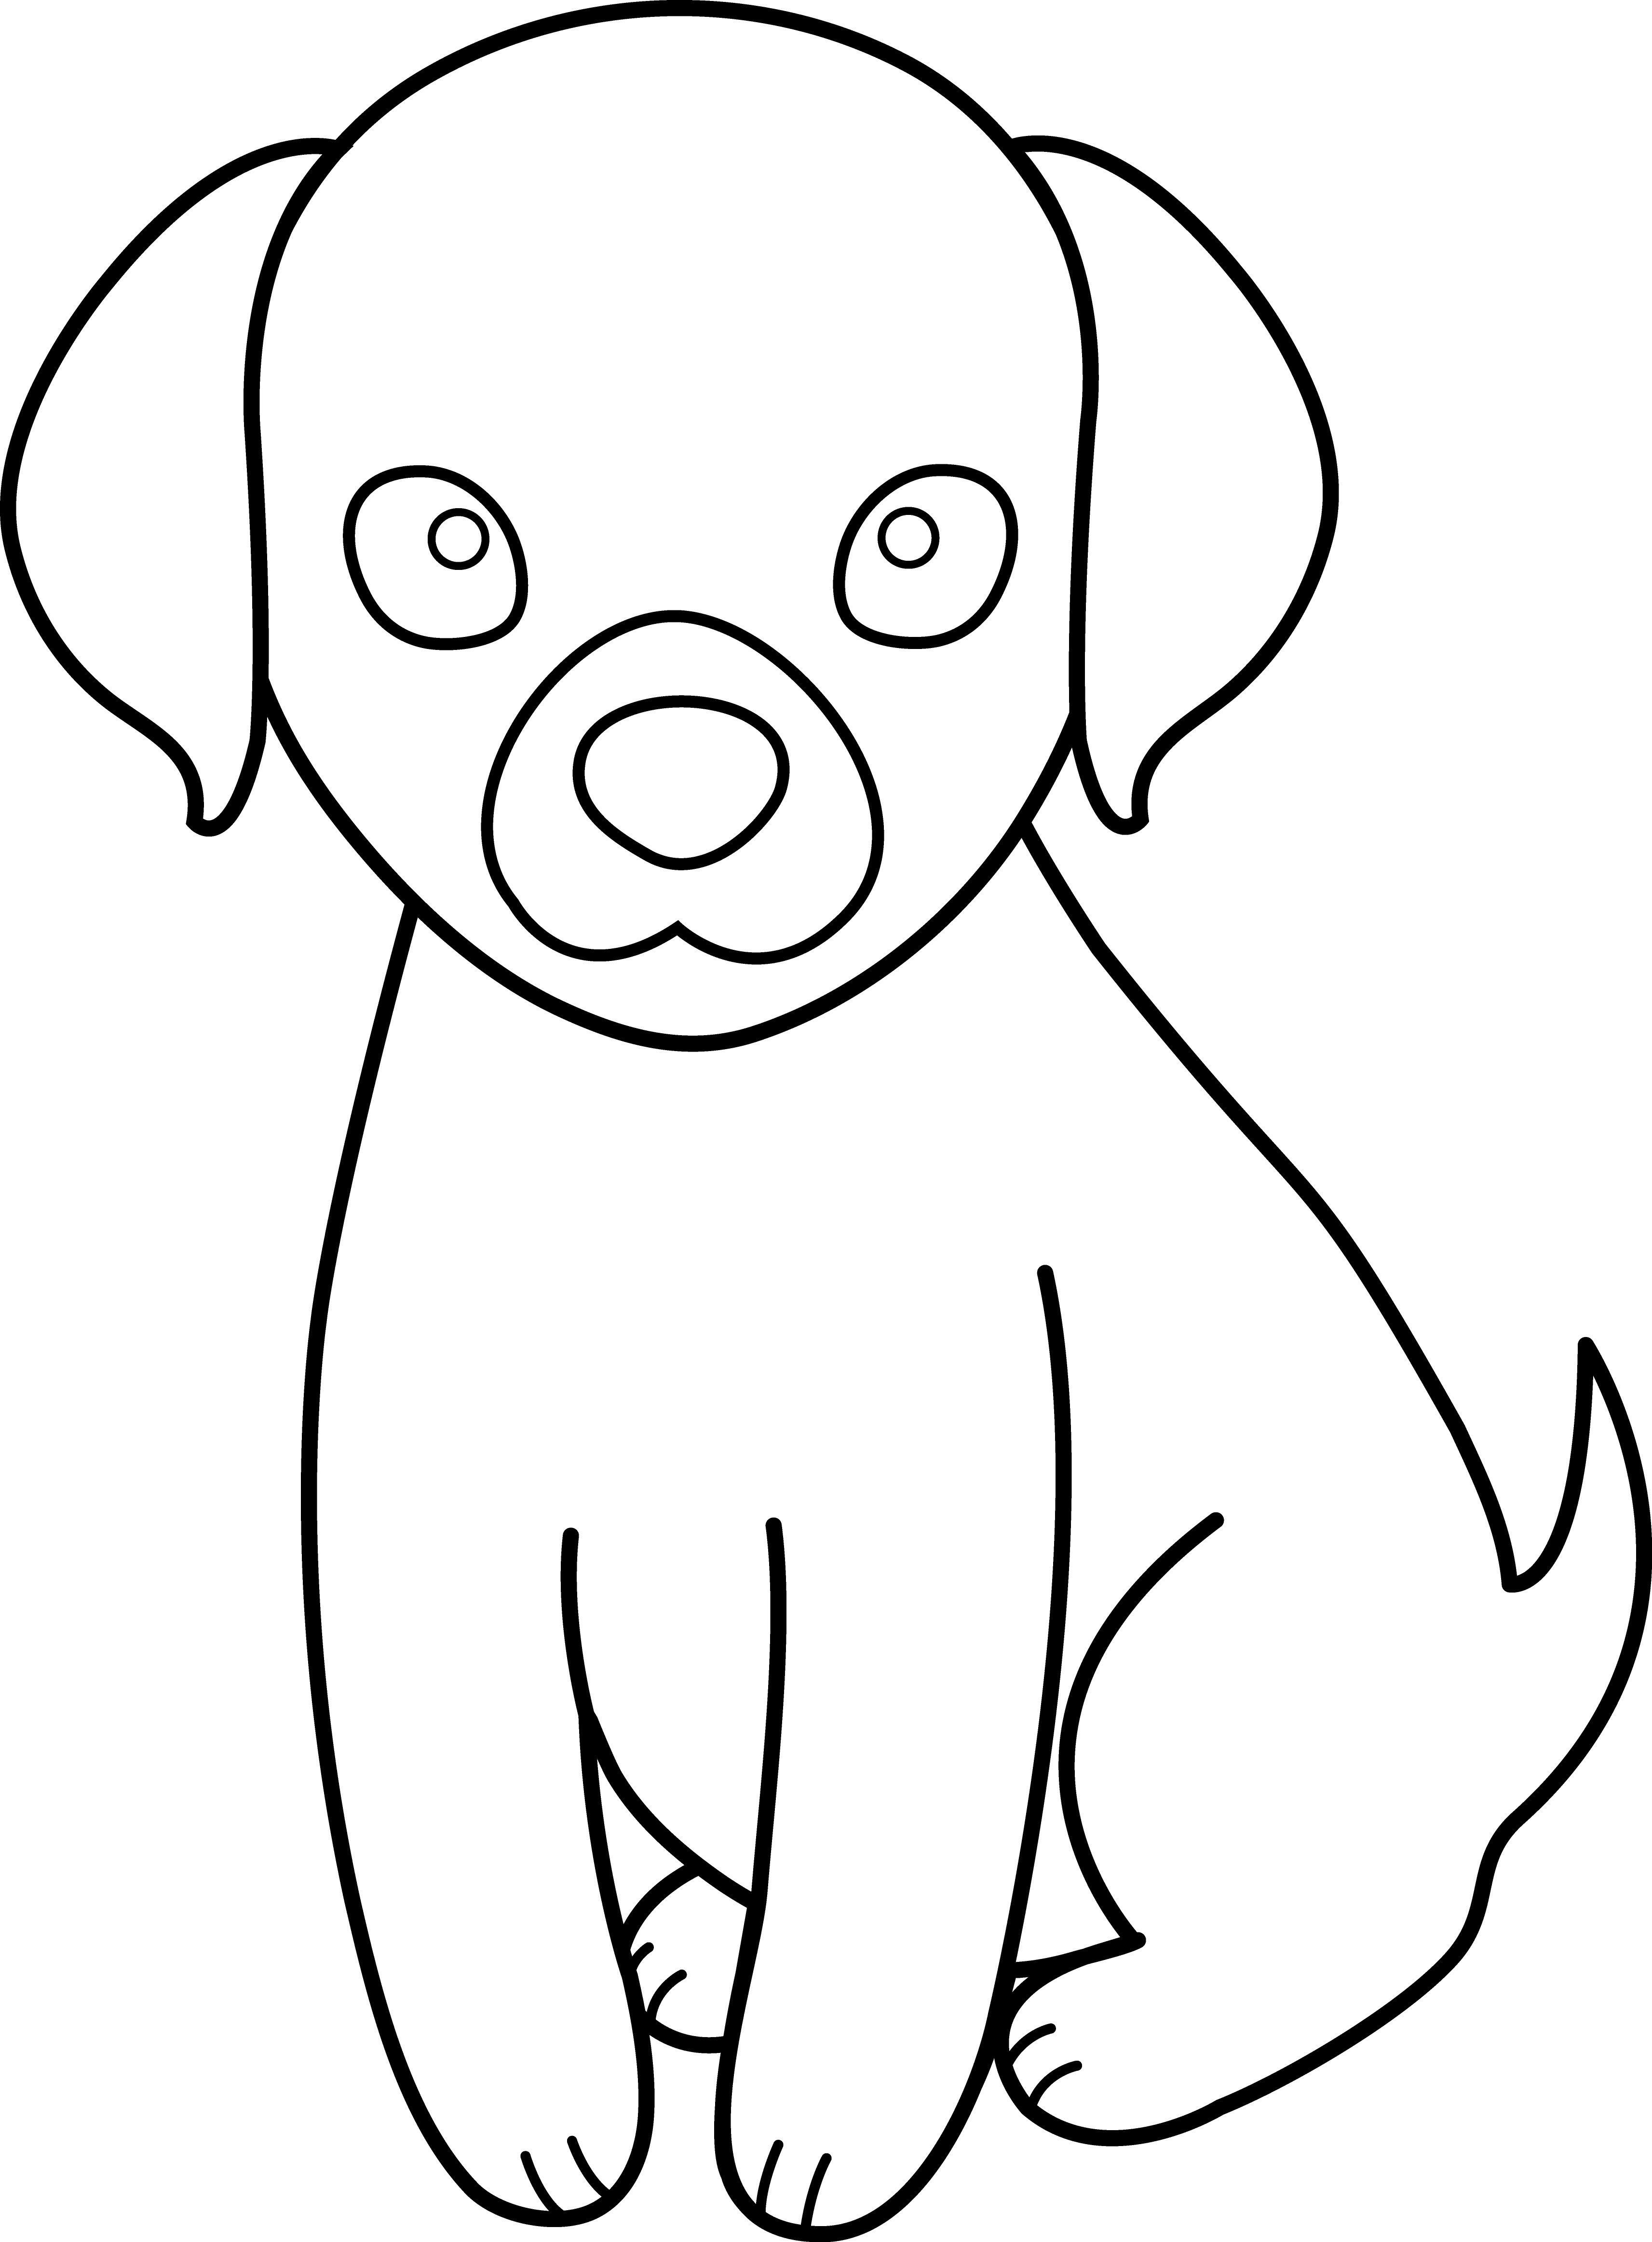 3426x4650 Hd Black And White Puppy Dog House Clipart Uploaded